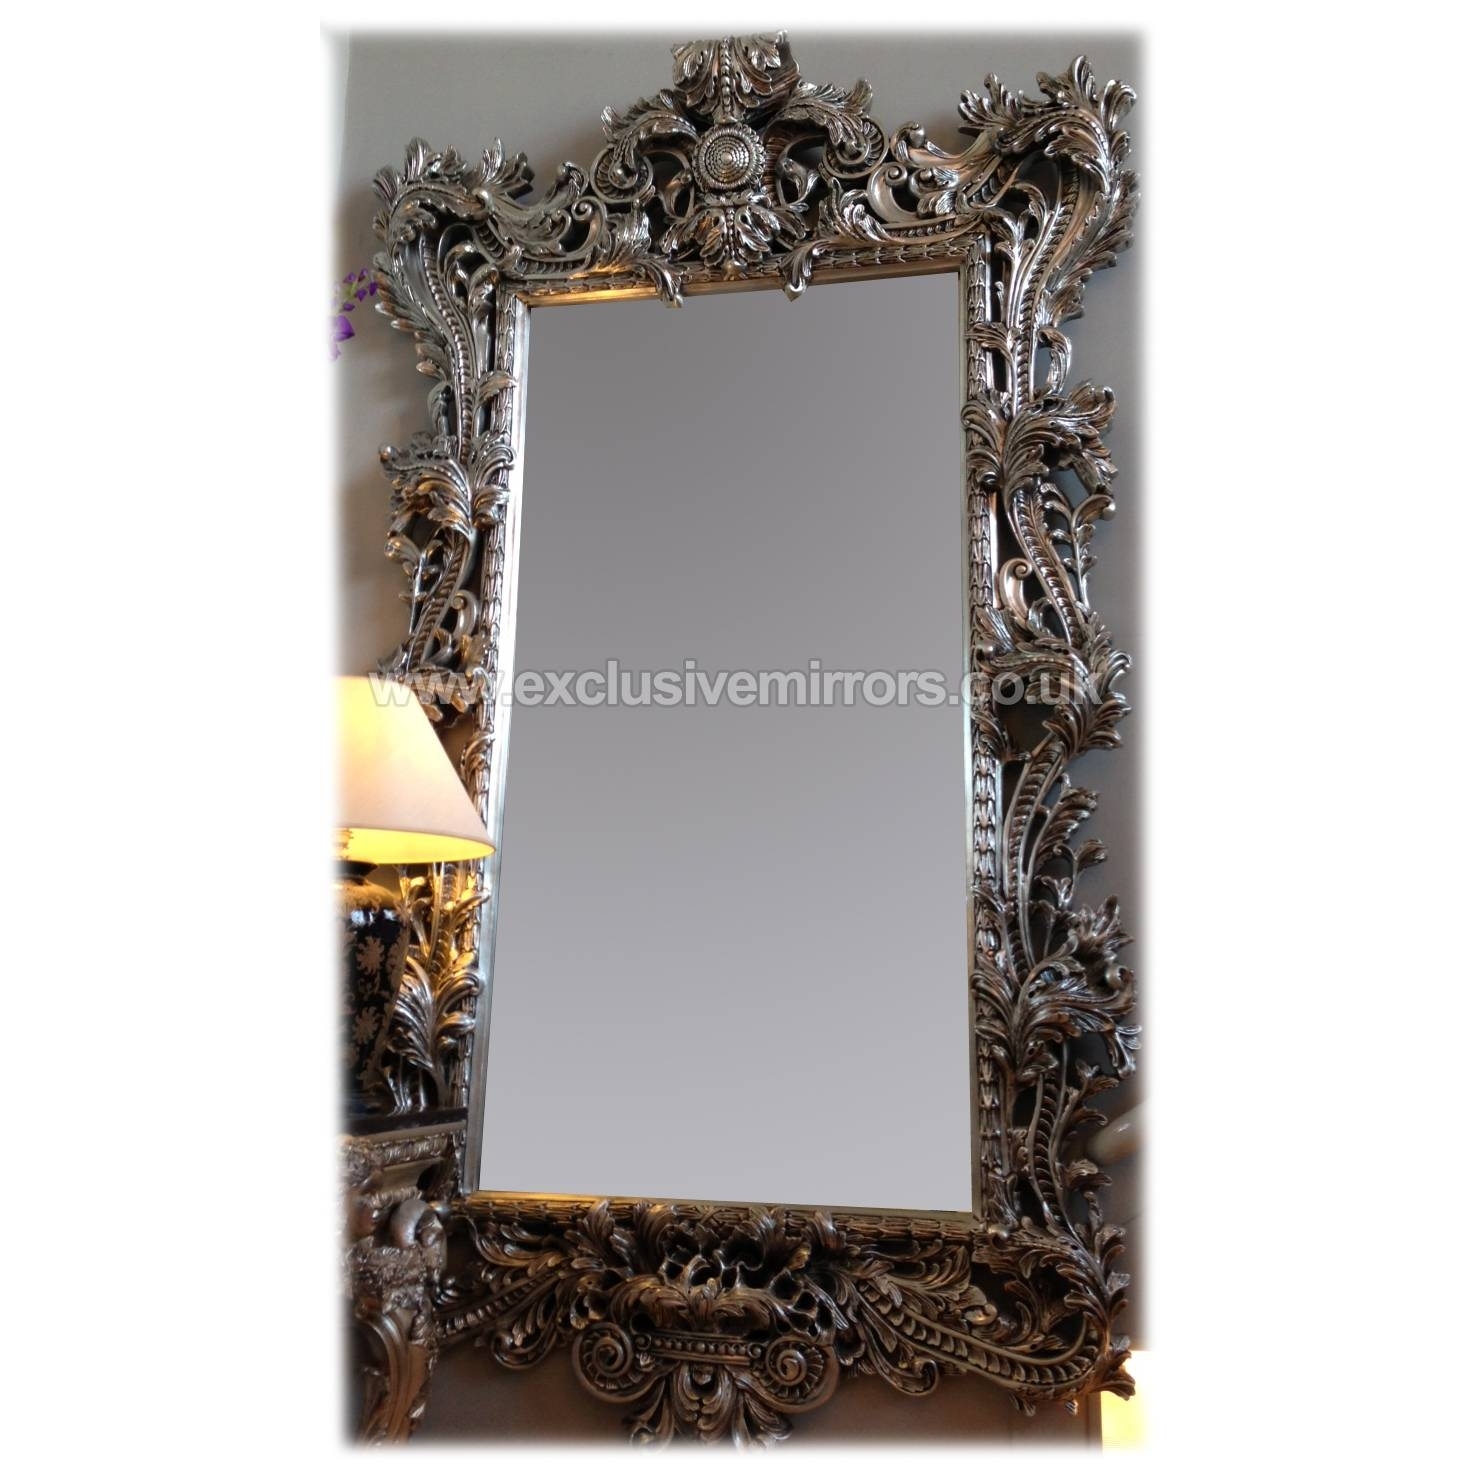 Extra Large Wall Mirrors 109 Cute Interior And Large Gold Very pertaining to Very Large Ornate Mirrors (Image 13 of 25)